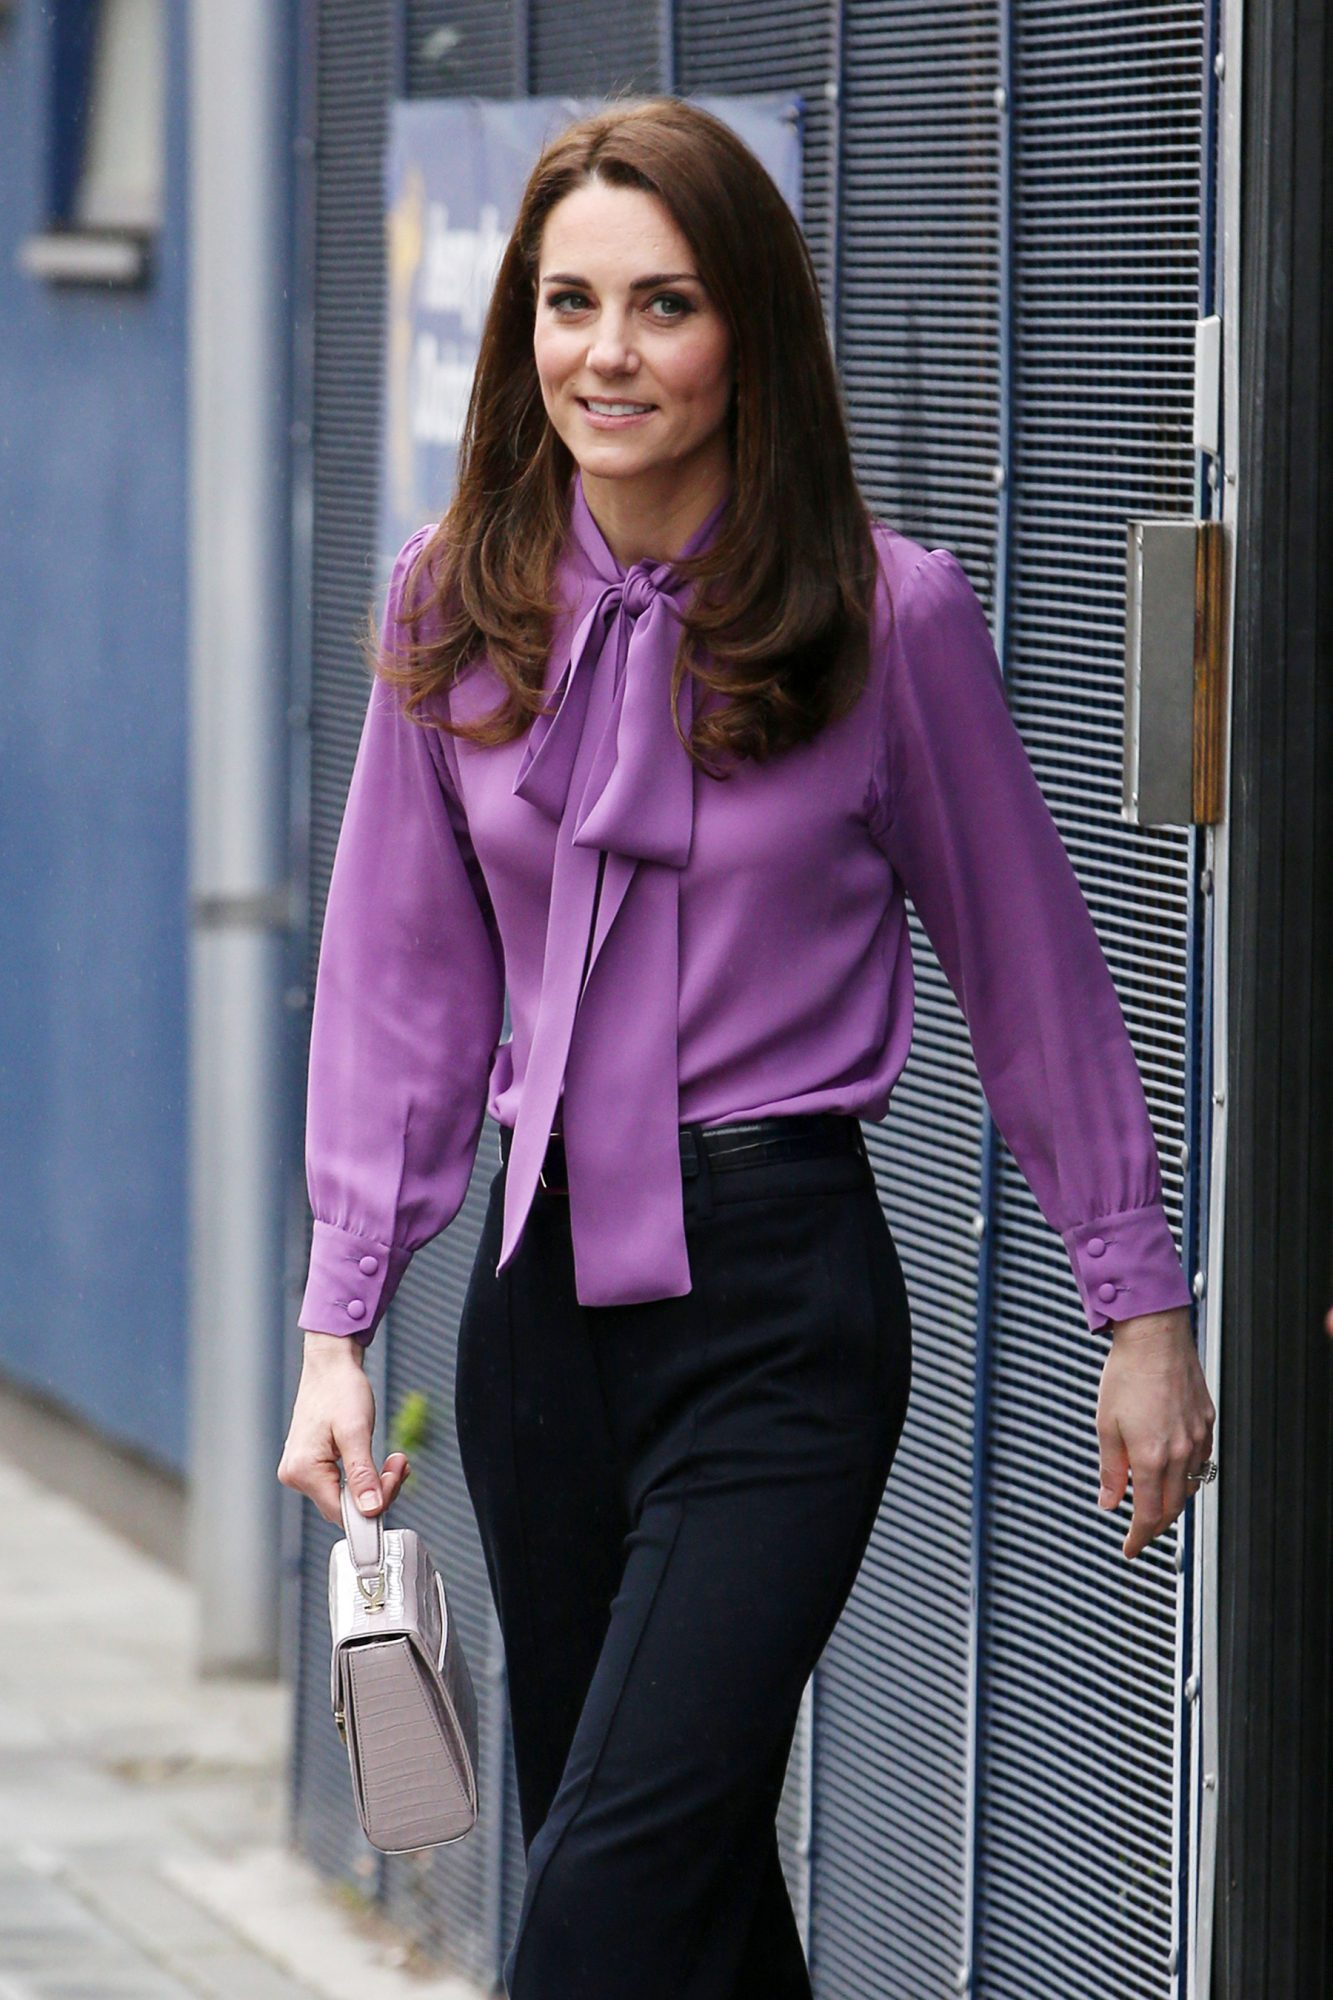 Catherine Duchess of Cambridge visits Henry Fawcett Children's centre, London - 12 Mar 2019